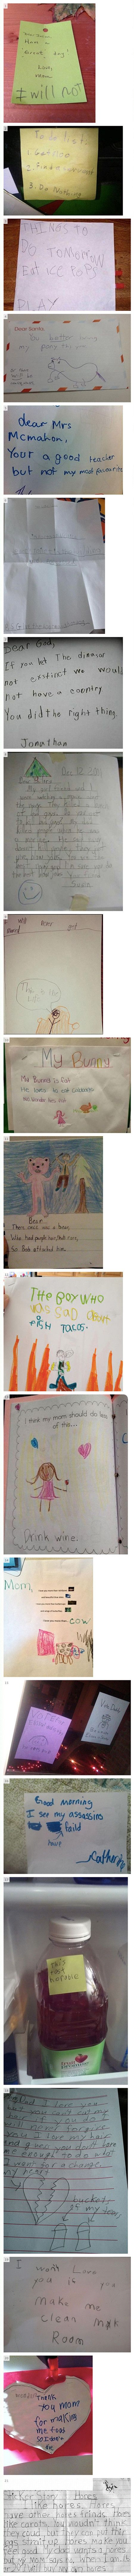 Kids are hilarious. Can't wait until mine is old enough to leave me some gems...